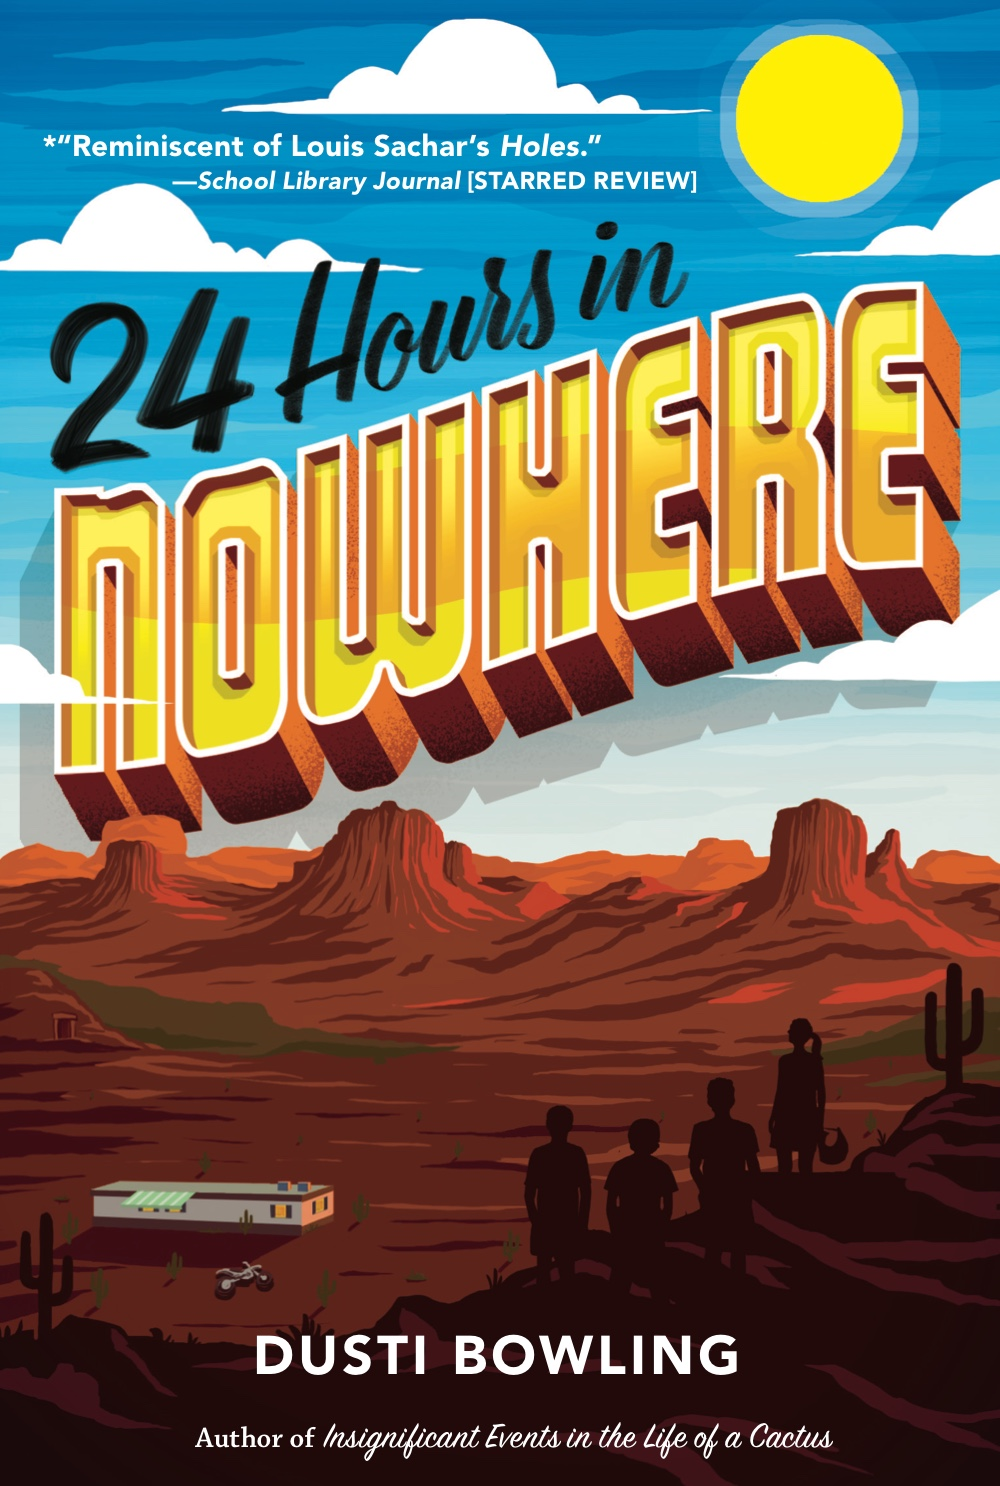 24 Hours in Nowhere